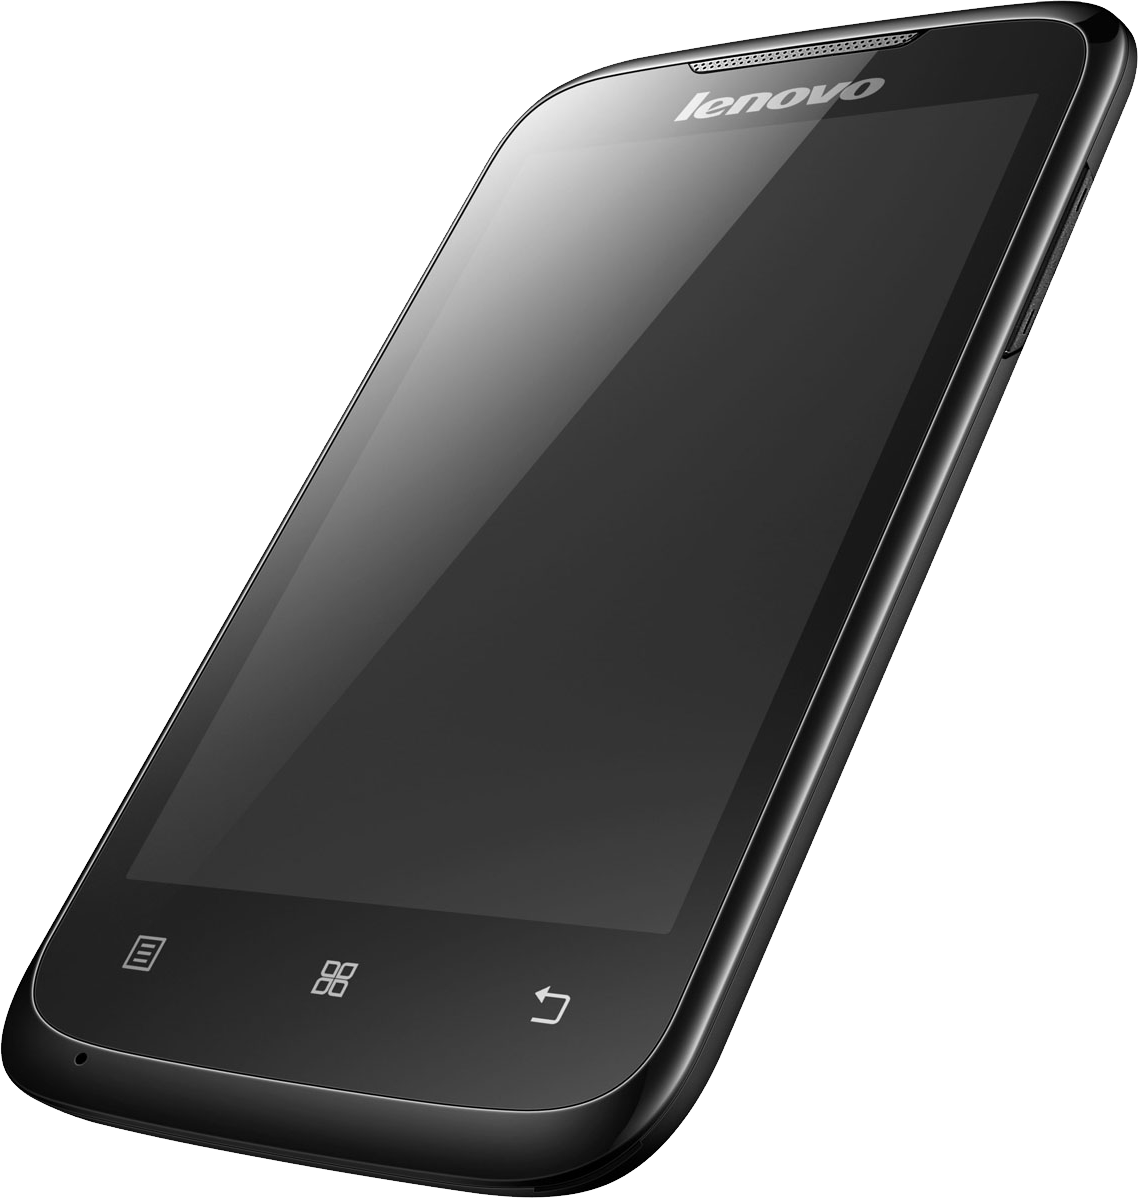 Android Smartphone PNG Image